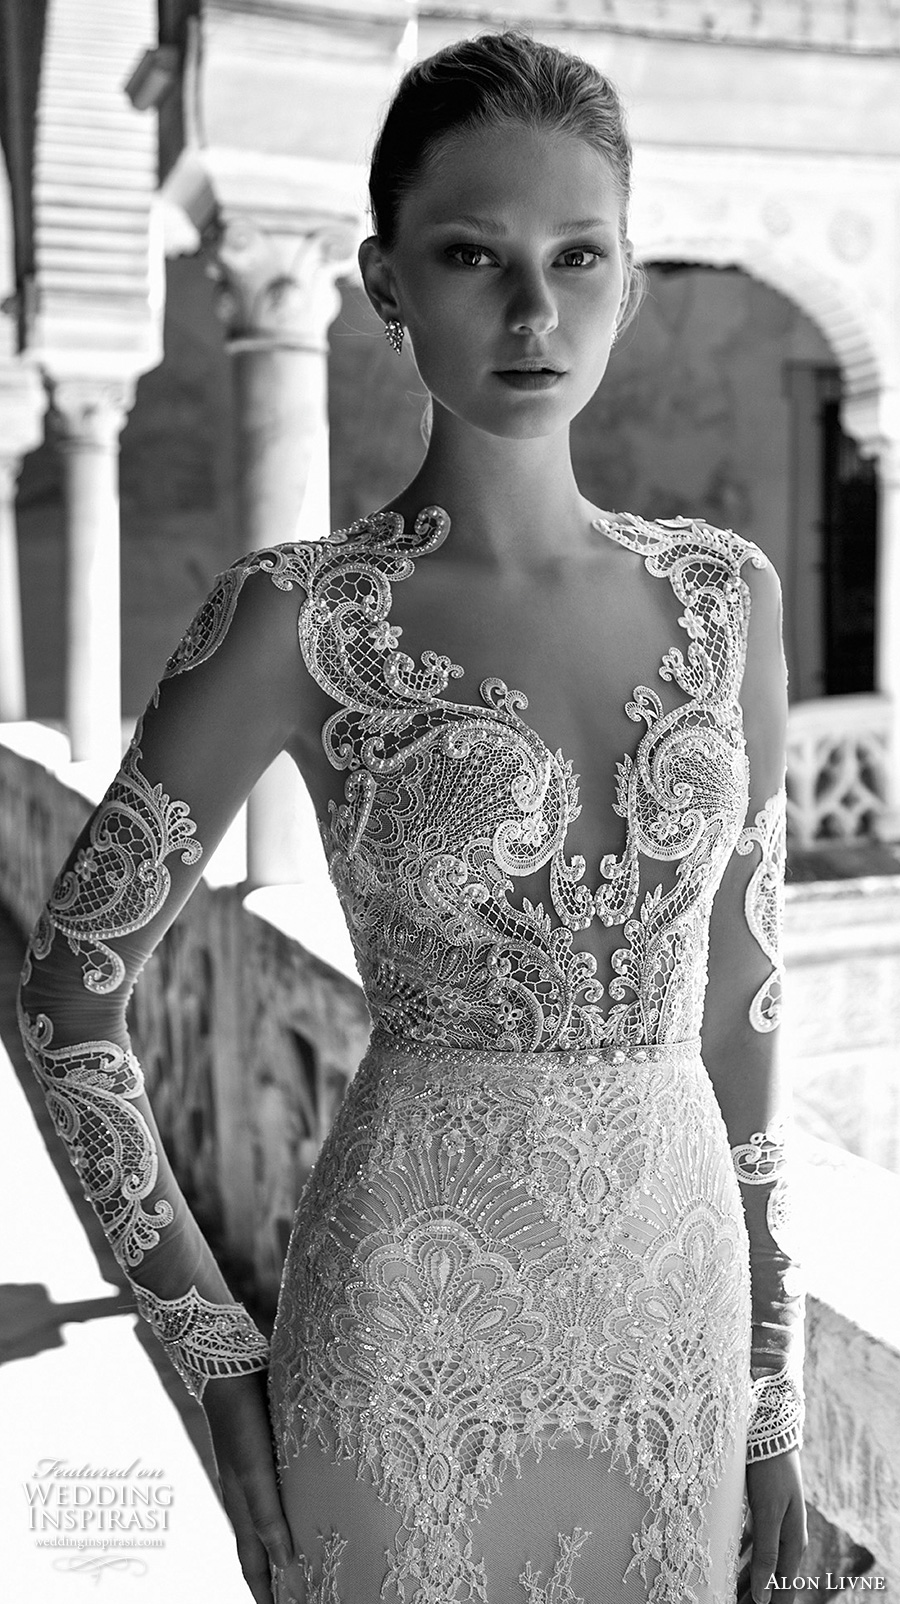 alon livne 2017 bridal long sleeves plunging sweetheart neckline full embroidered elegant glamorous sheath wedding dress keyhole back sweep train (caroline) zv